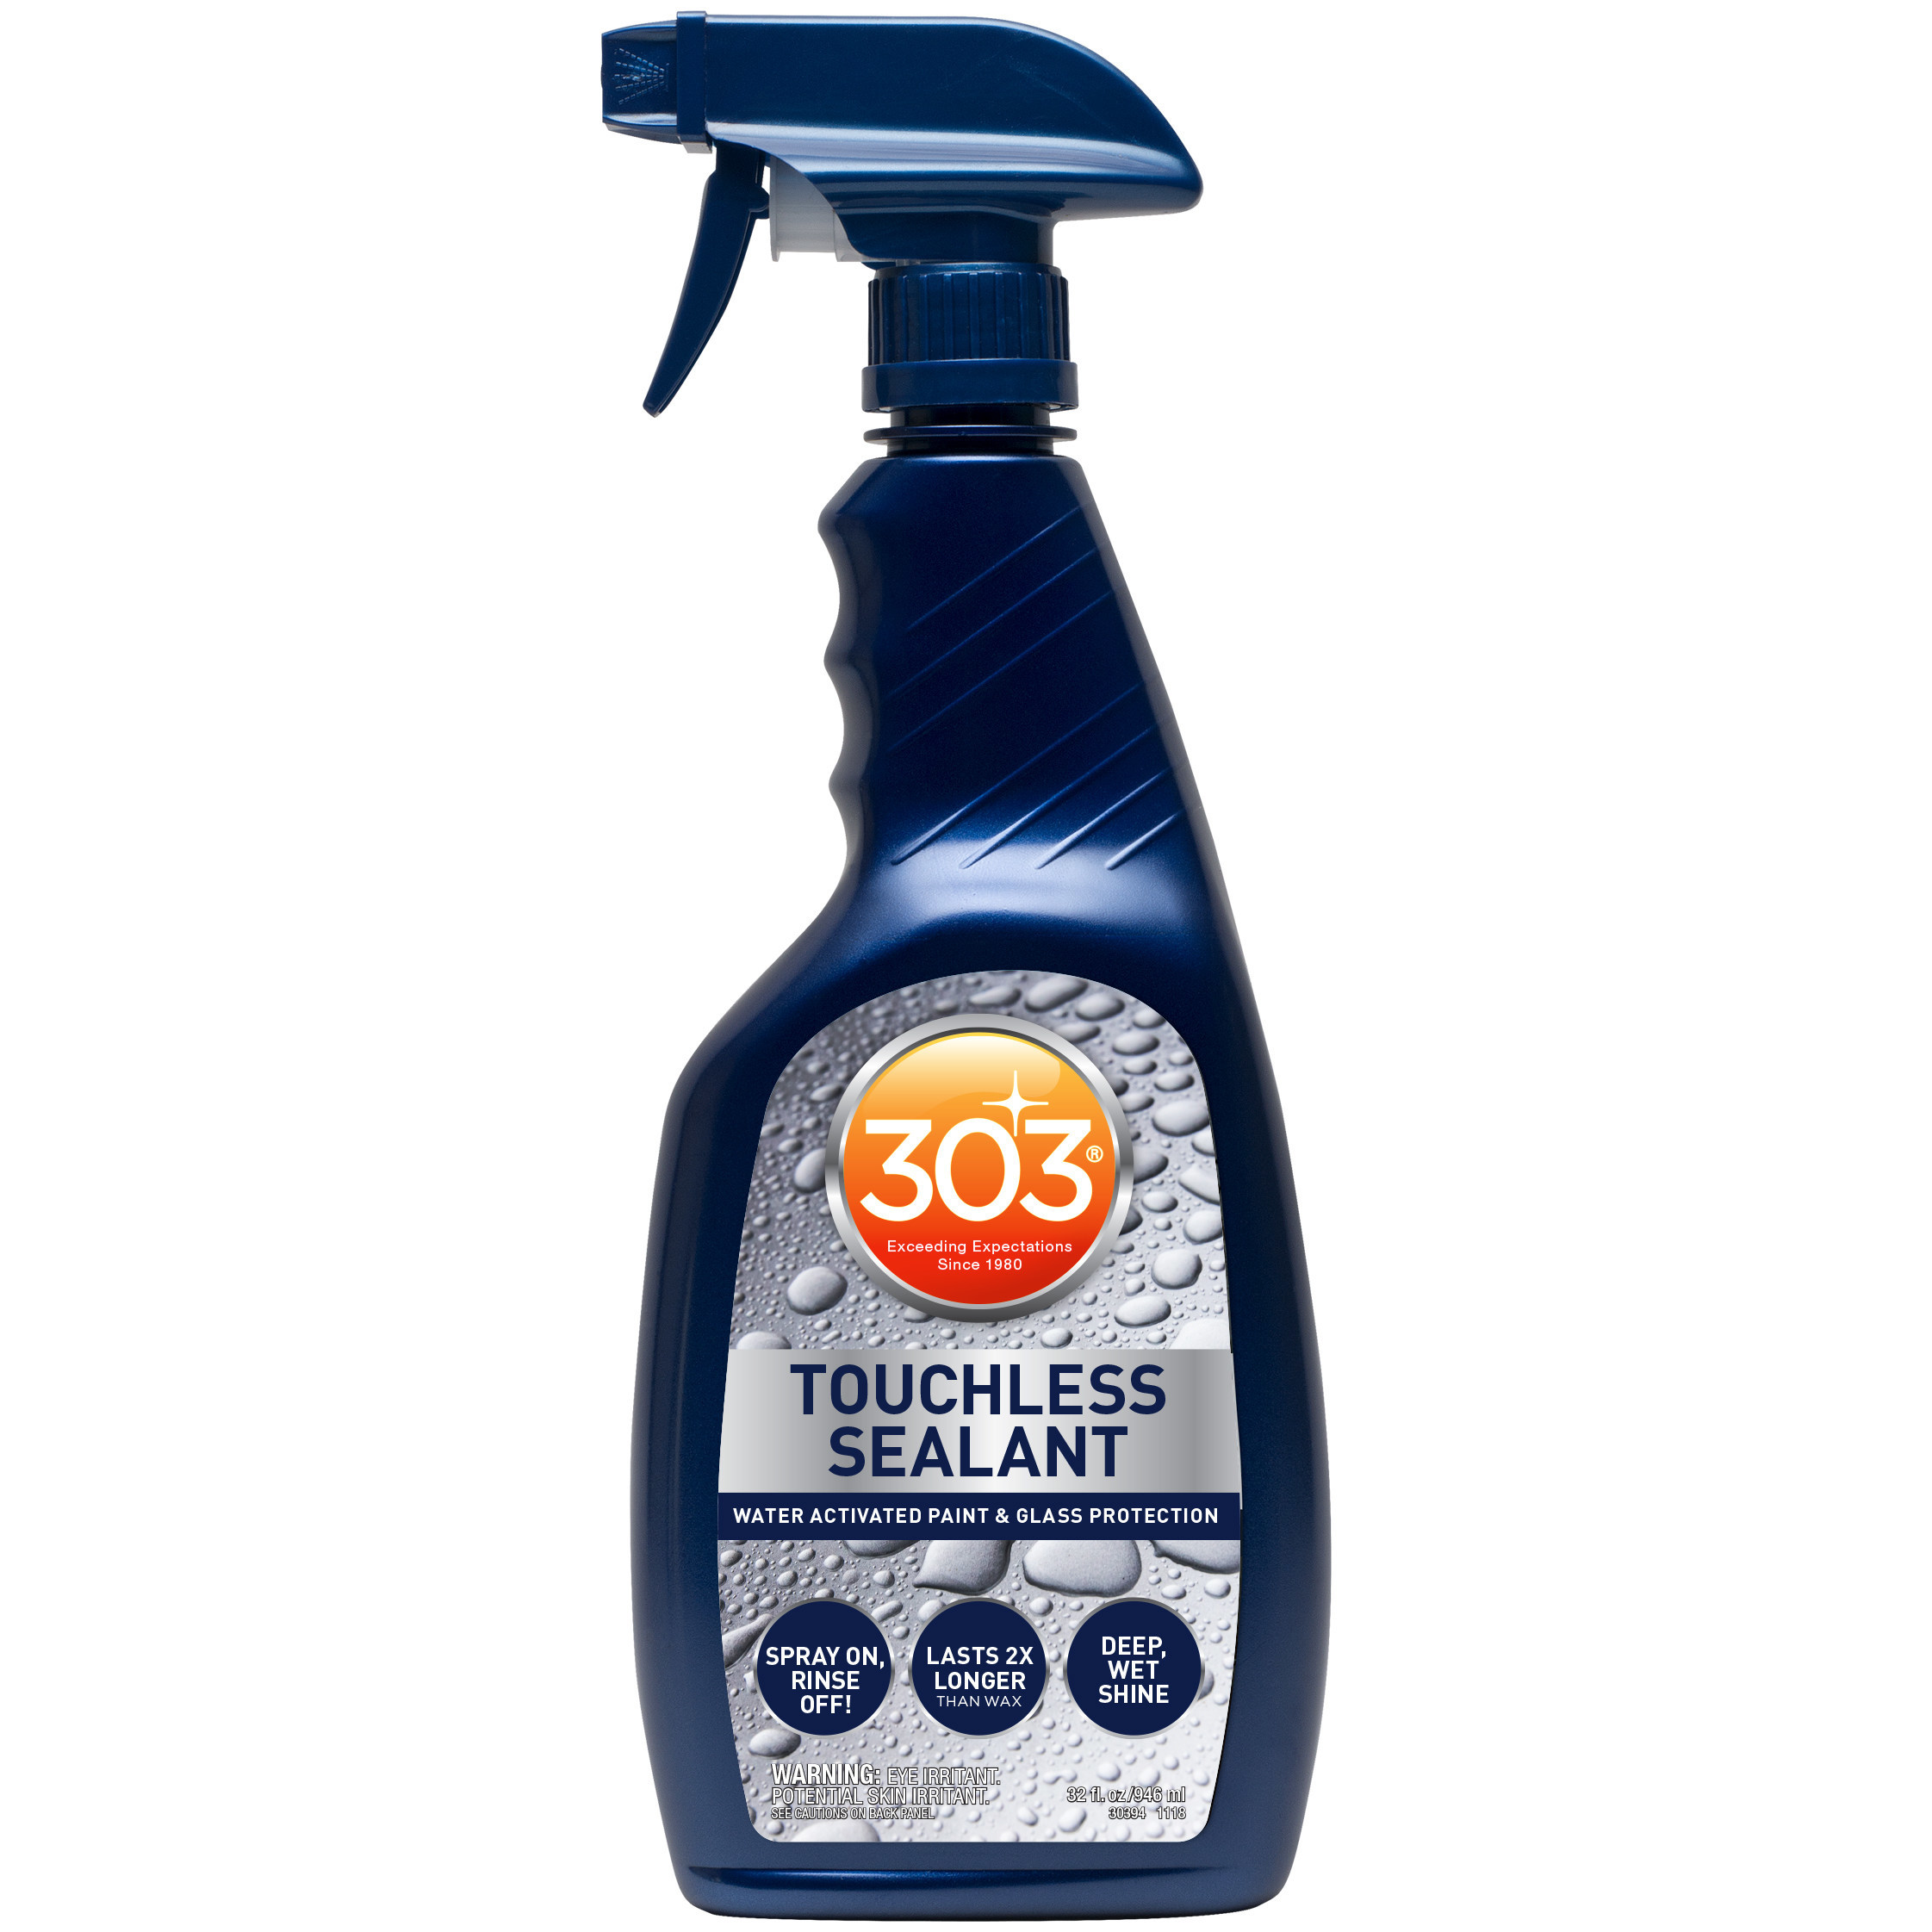 New 303® Touchless Sealant pictured above.